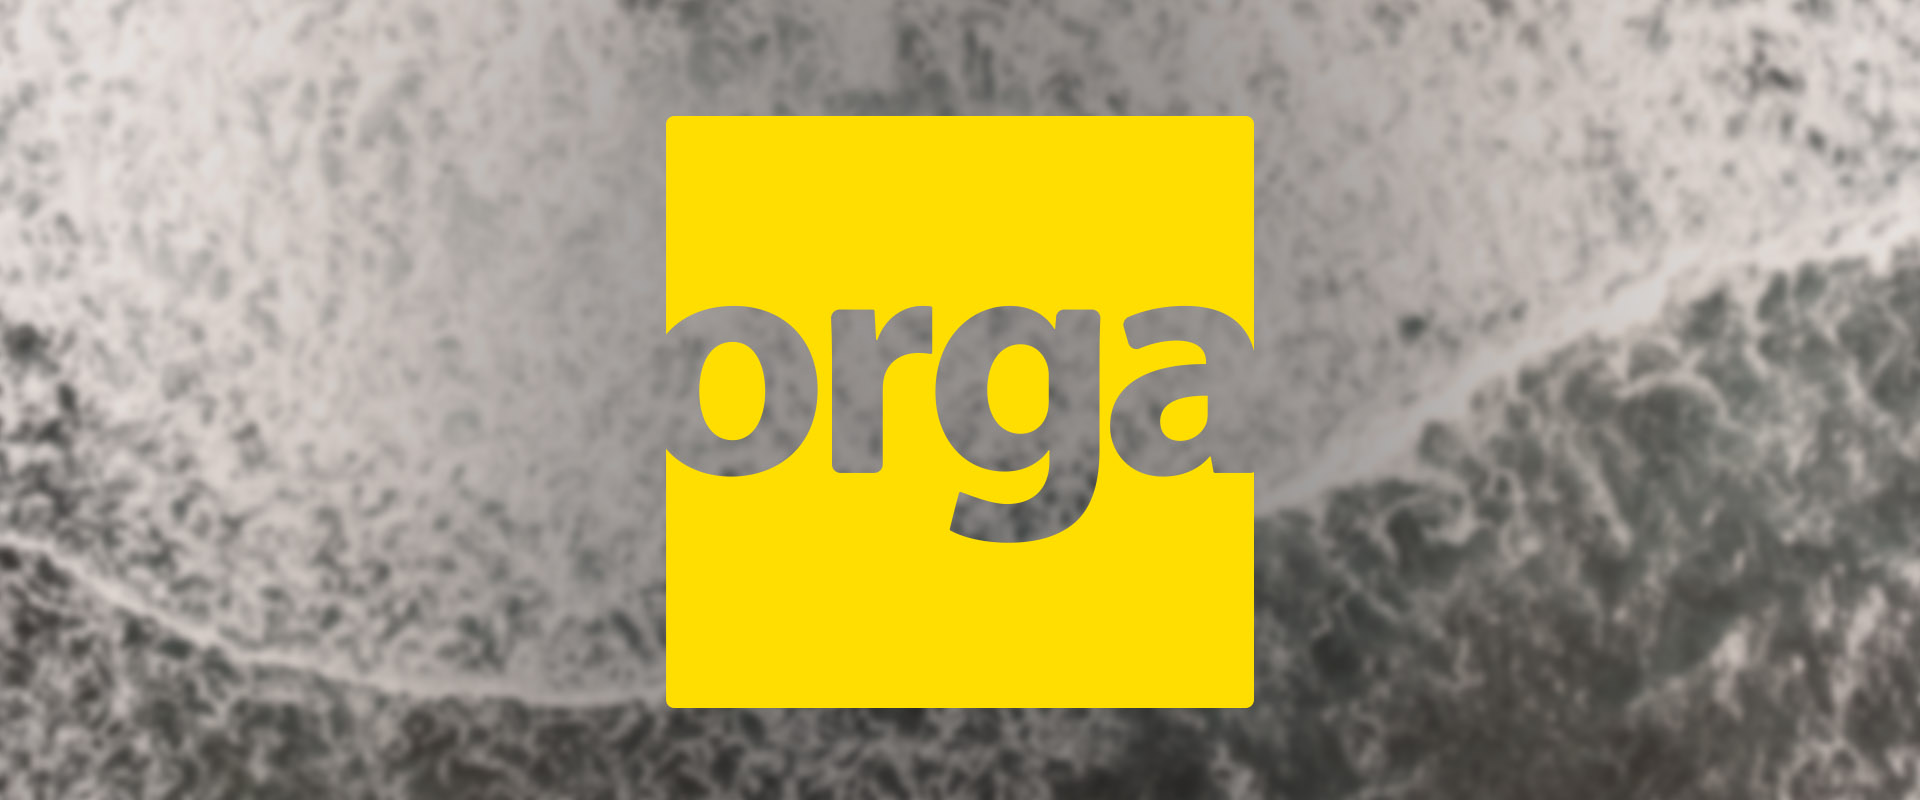 News banner release website | Orga